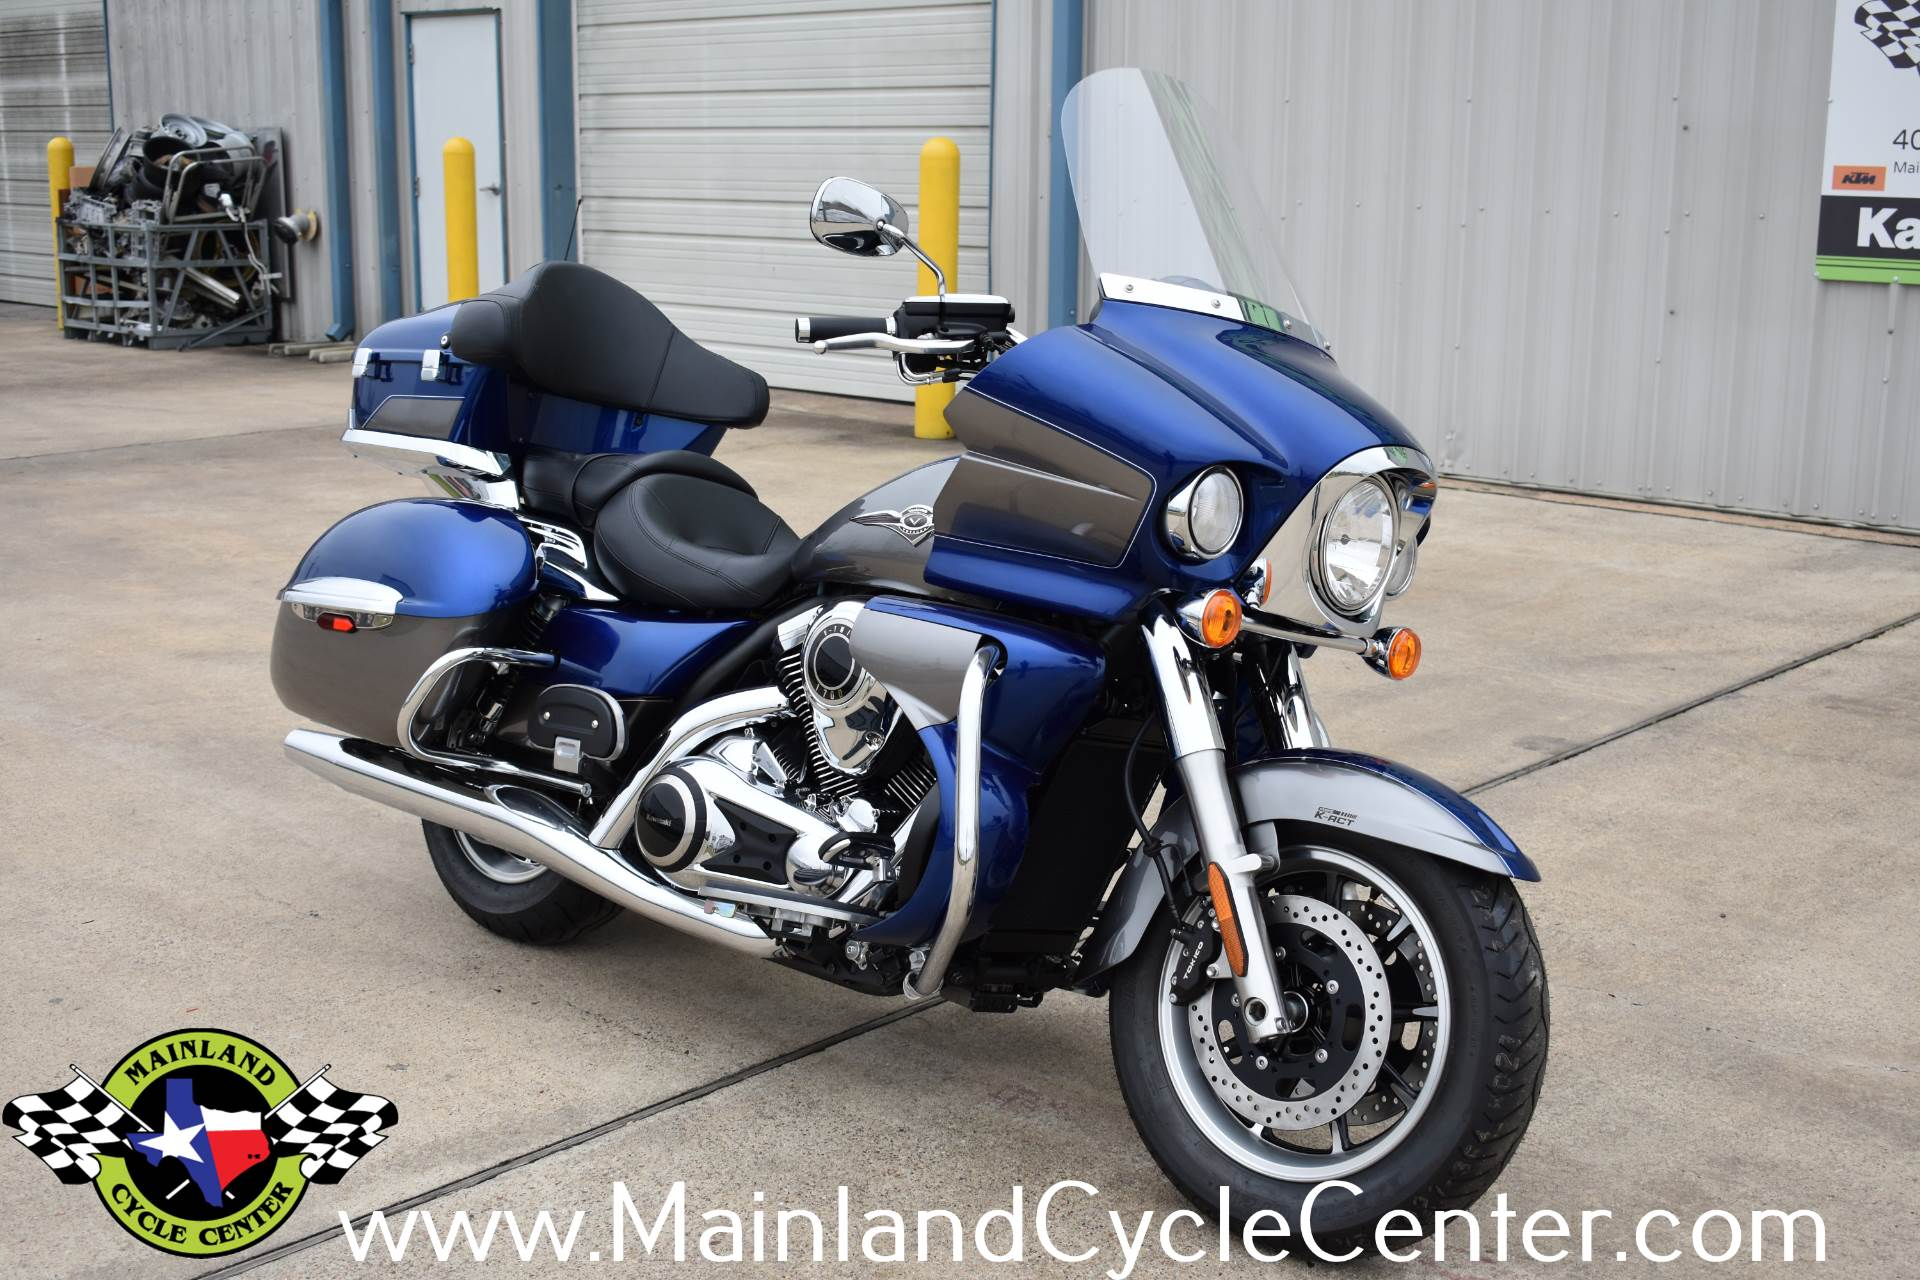 2019 Kawasaki Vulcan 1700 Voyager ABS in La Marque, Texas - Photo 1